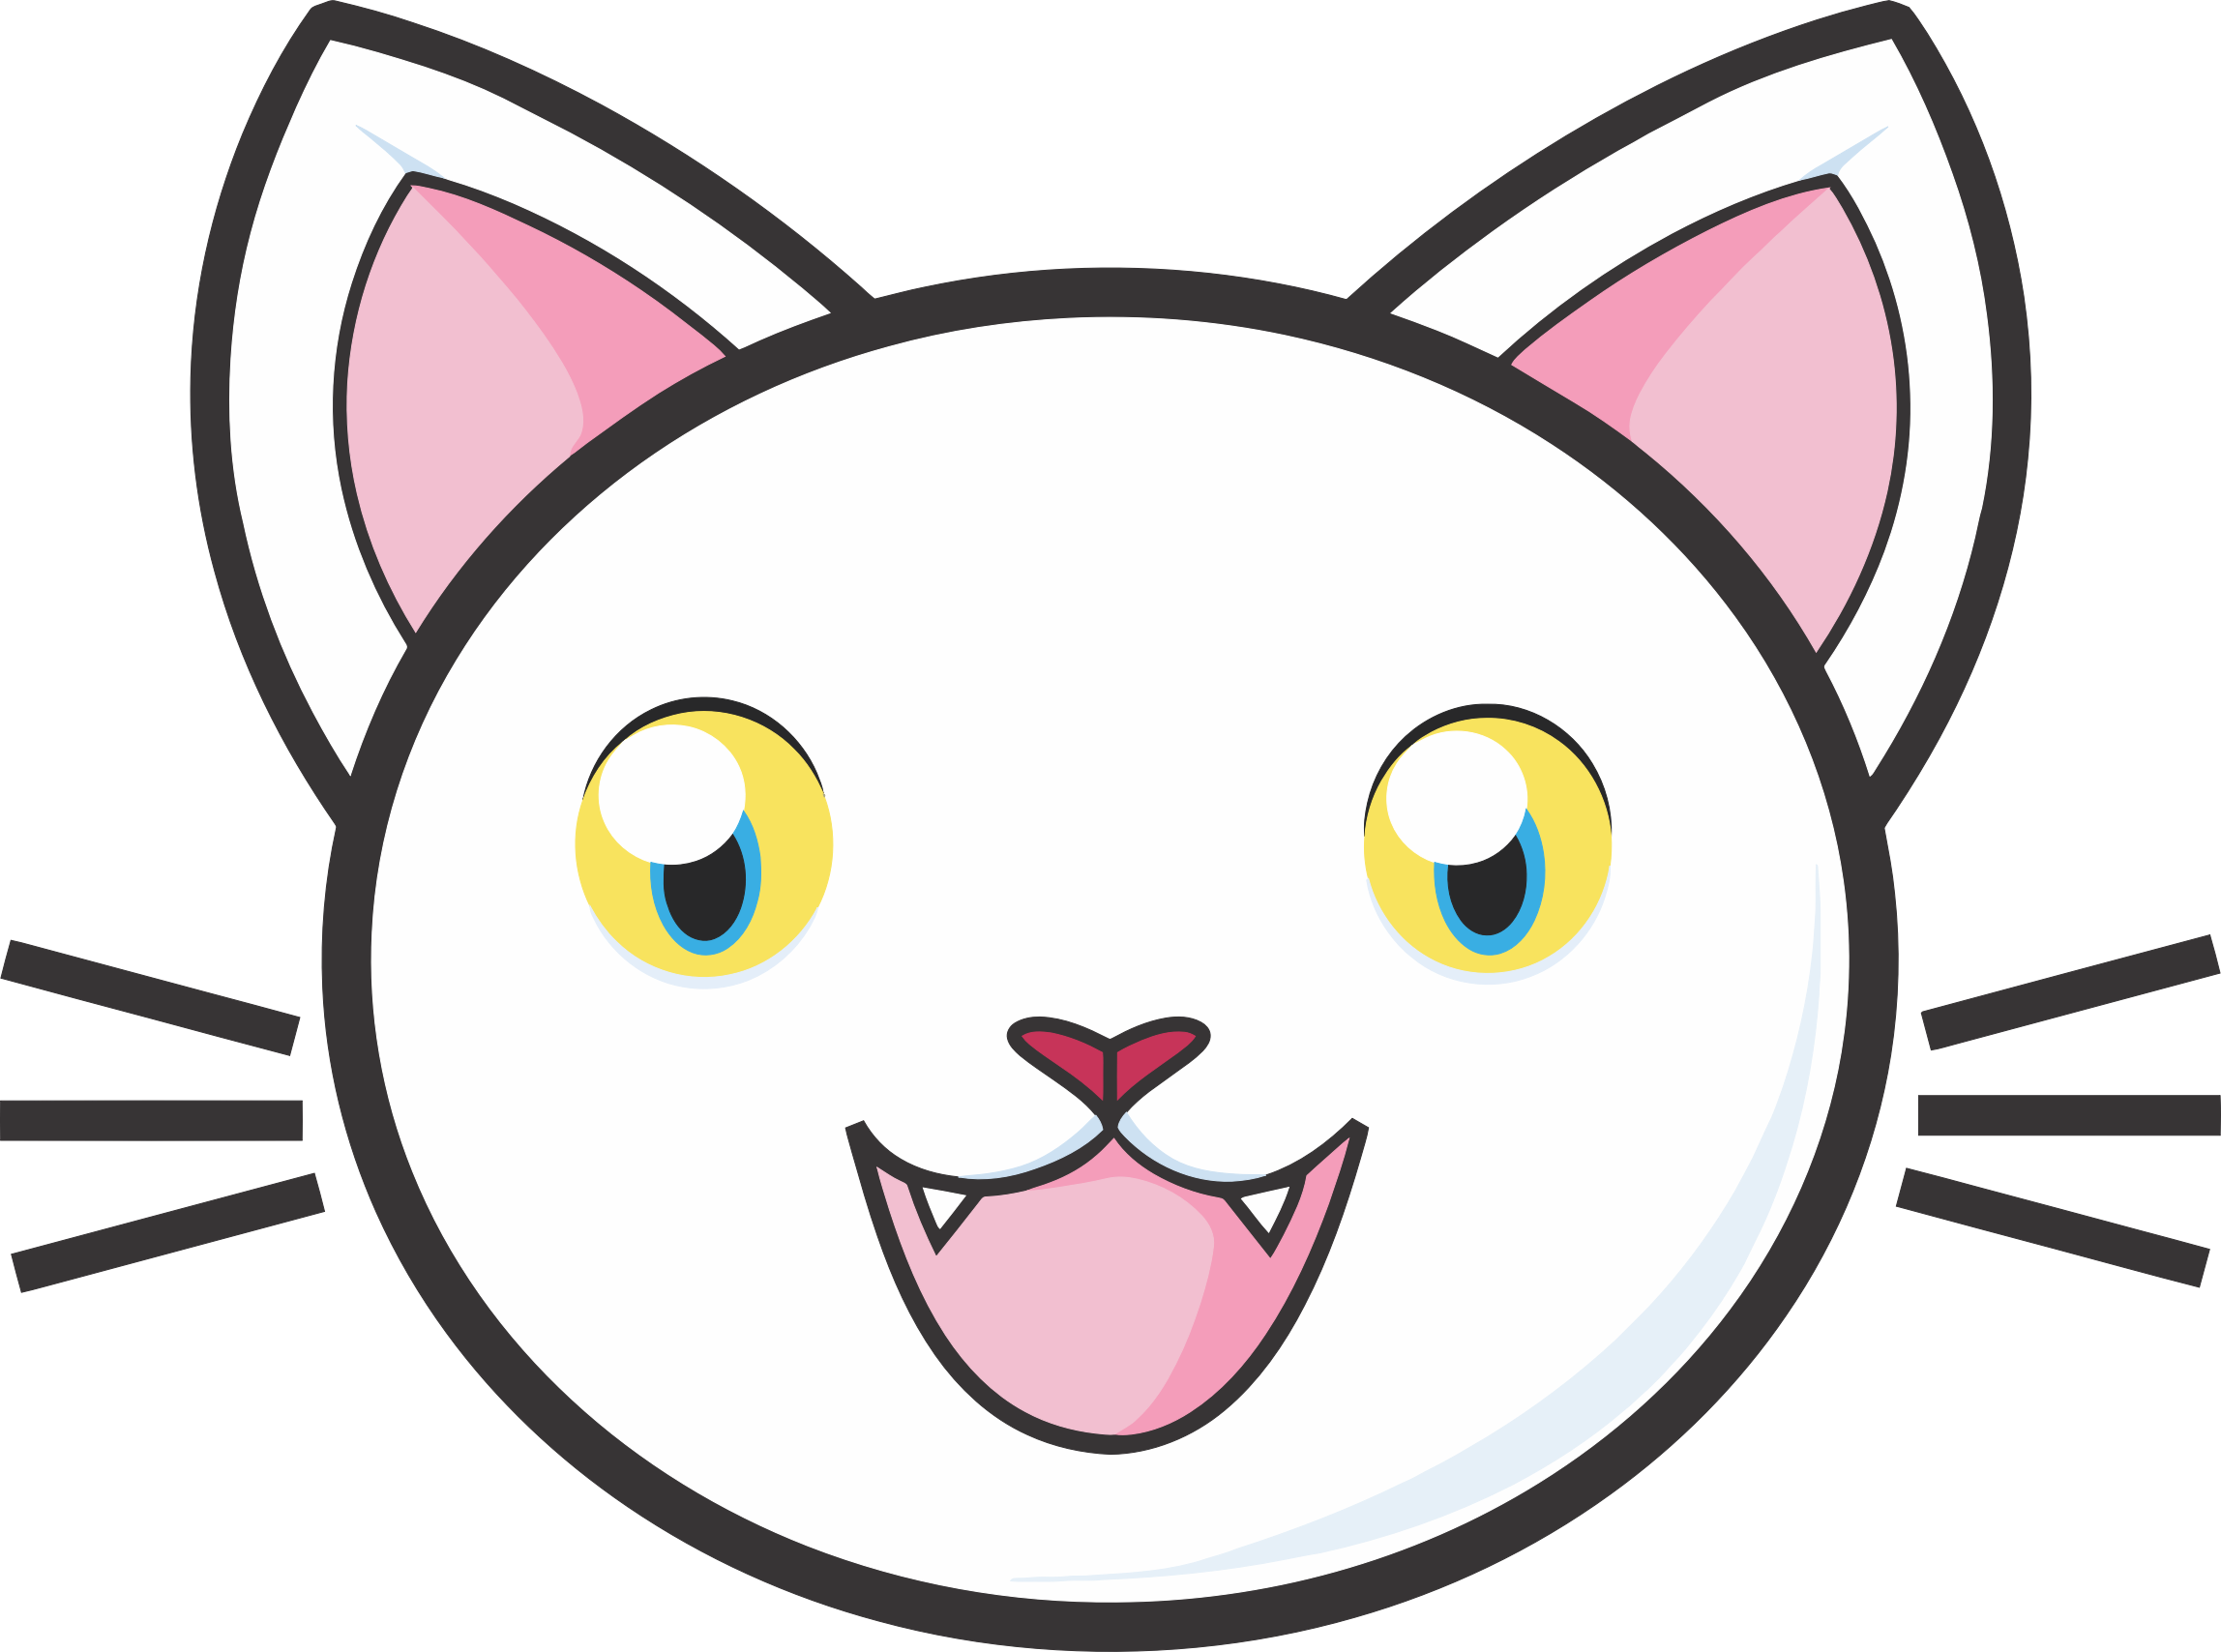 Happy cat face clipart svg library download Clipart - Happy White Cat 2 svg library download